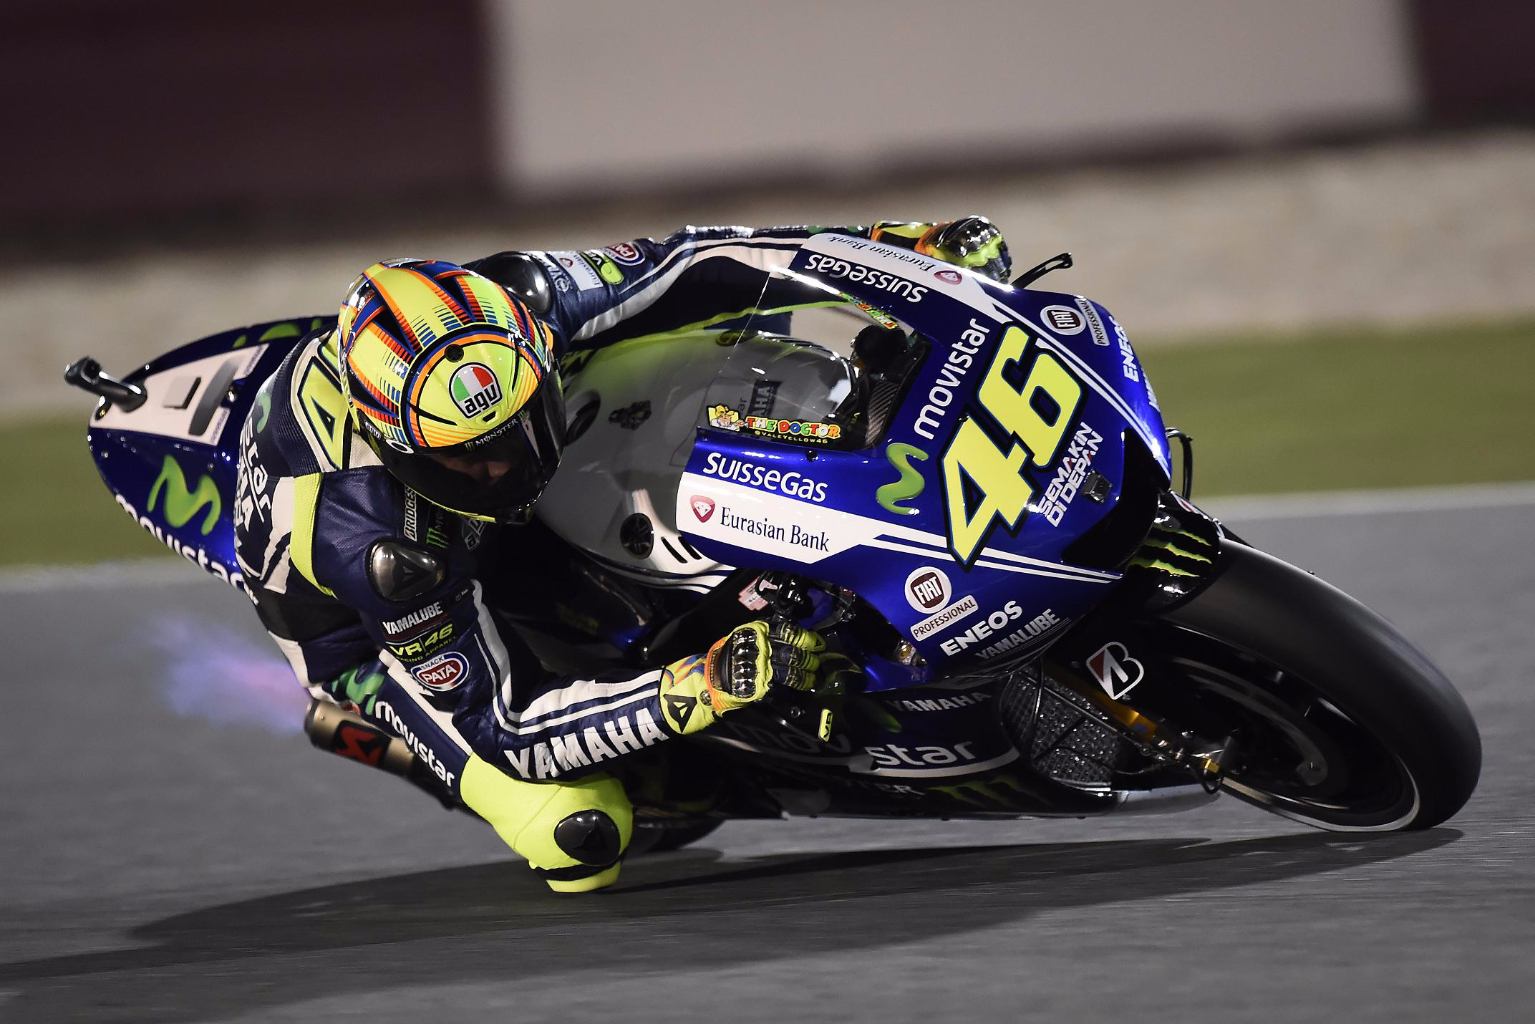 Valentino-Rossi-Movistar-Yamaha-2014-MotoGP-Wallpaper